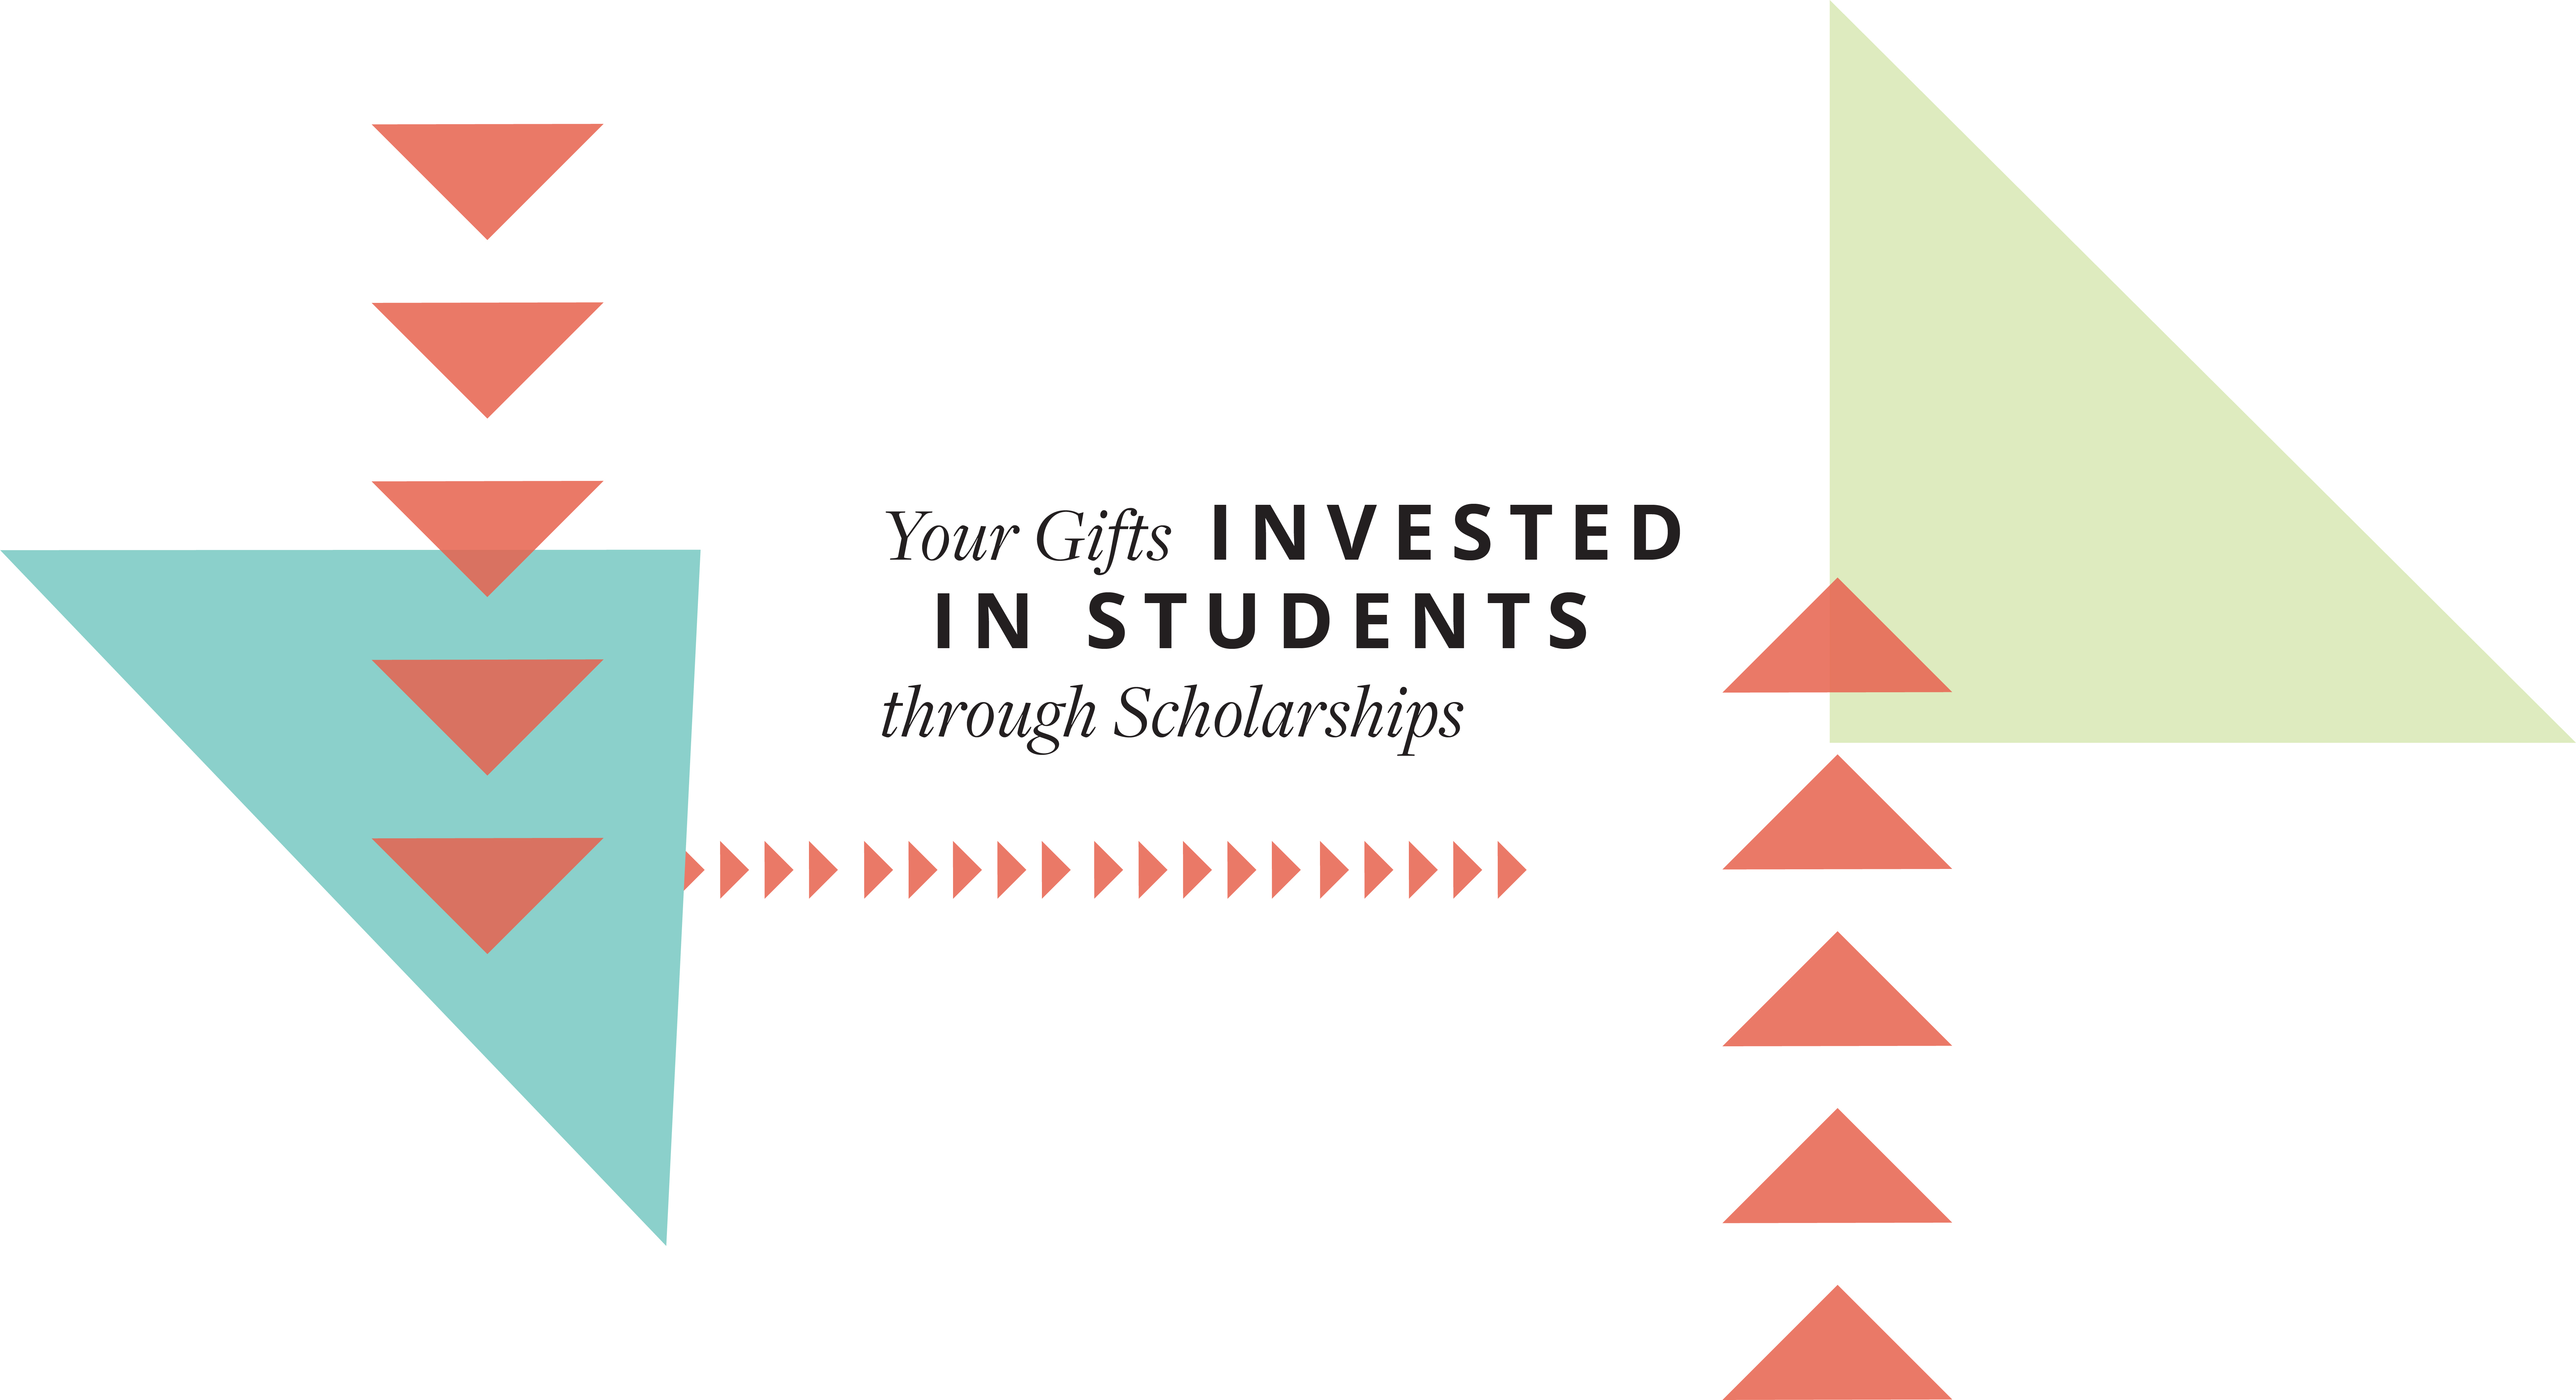 Your Gifts Invested in Students Through Scholarships